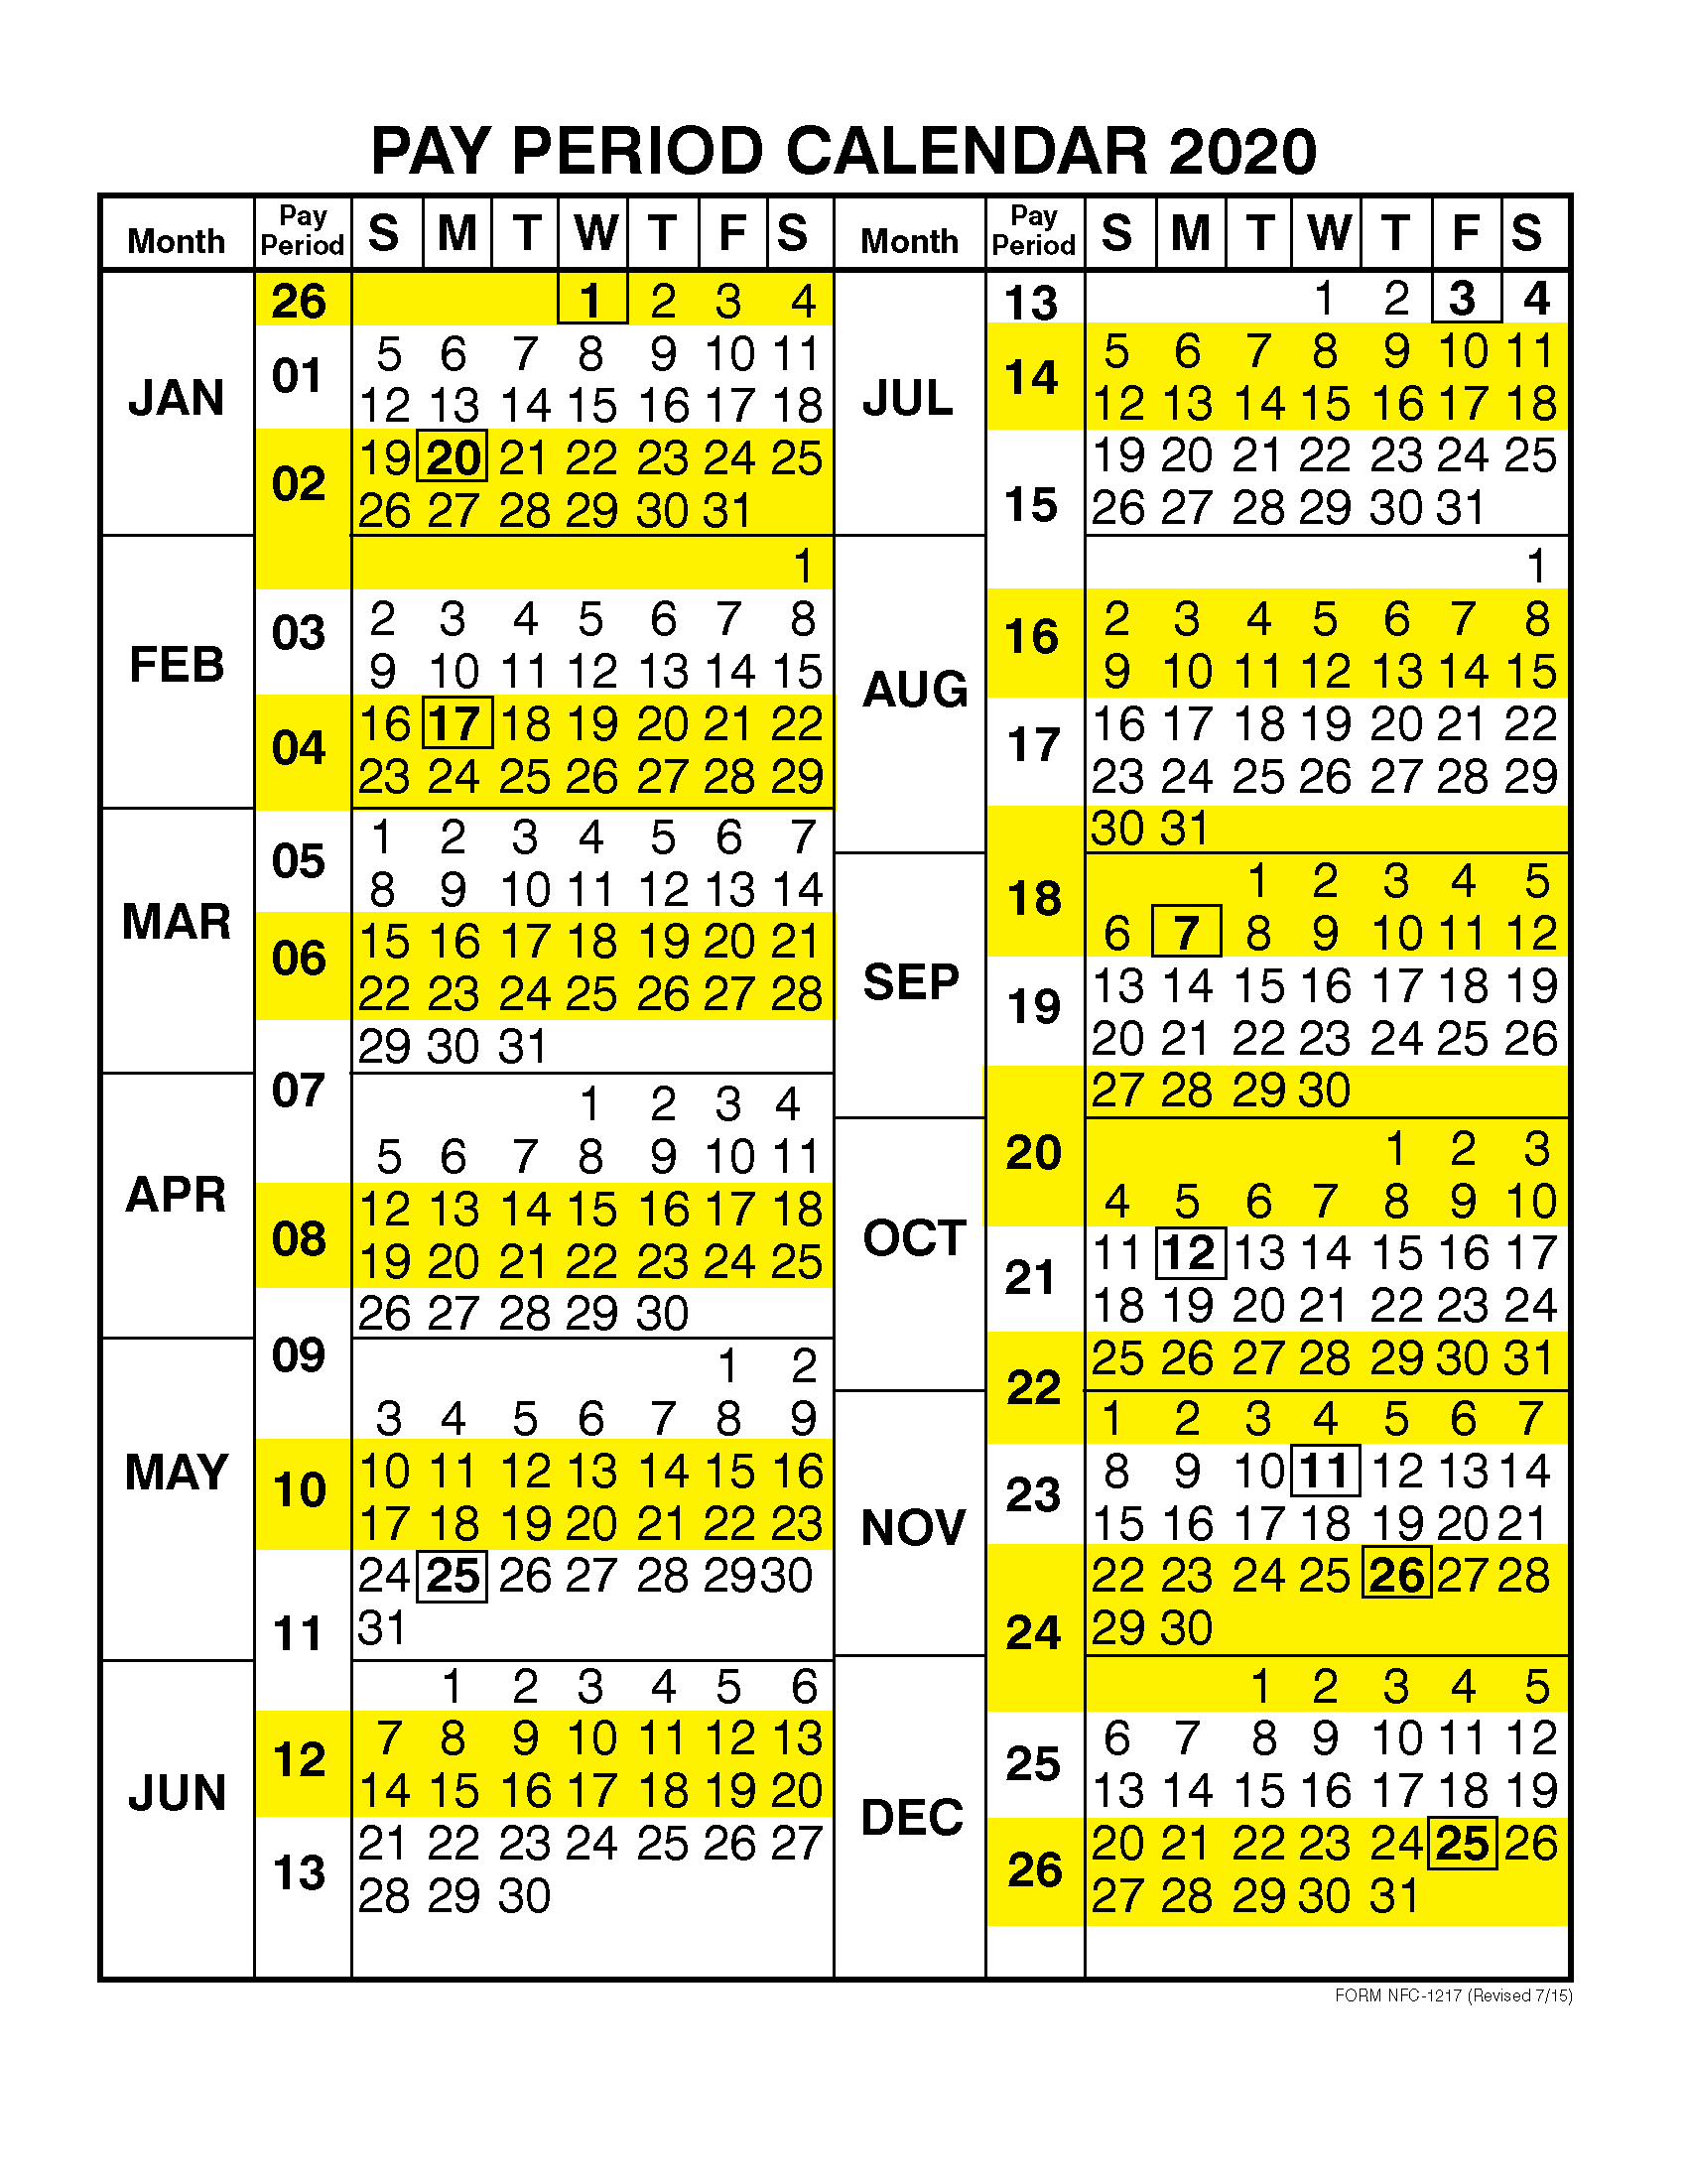 Pay Period Calendar 2020 By Calendar Year | Free Printable pertaining to Pay Period Calendar 2020 Template